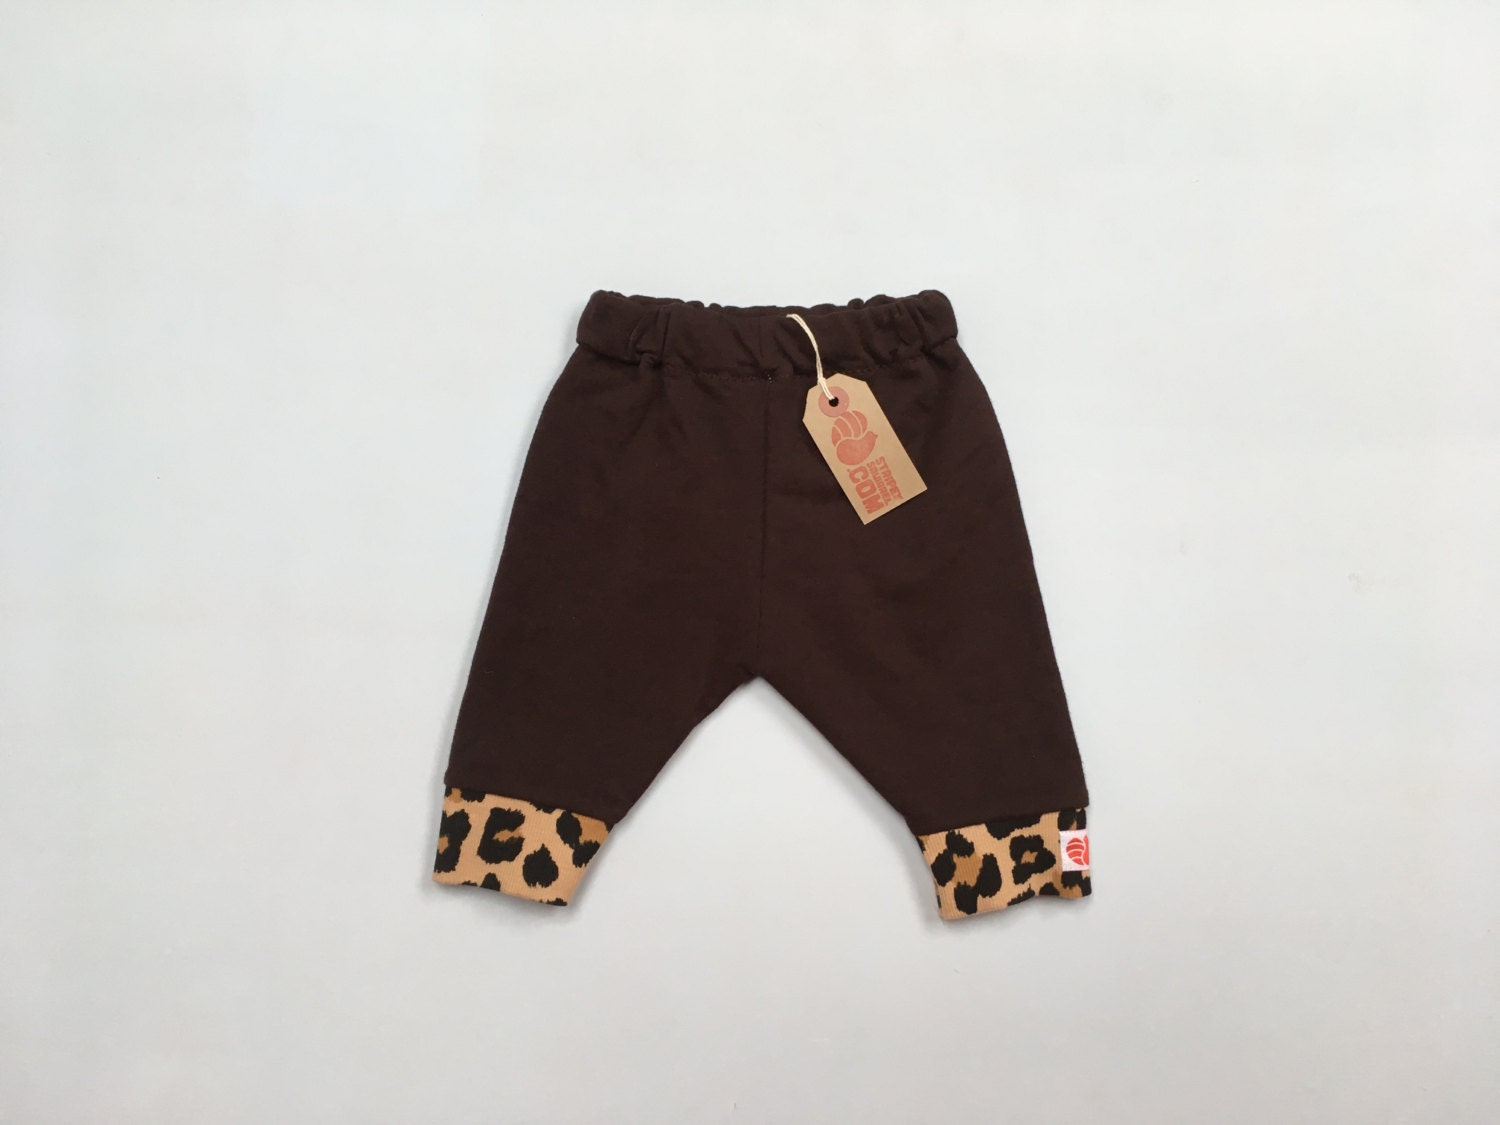 Soft brown trousers with animal print cuff. 36 months. Unisex.